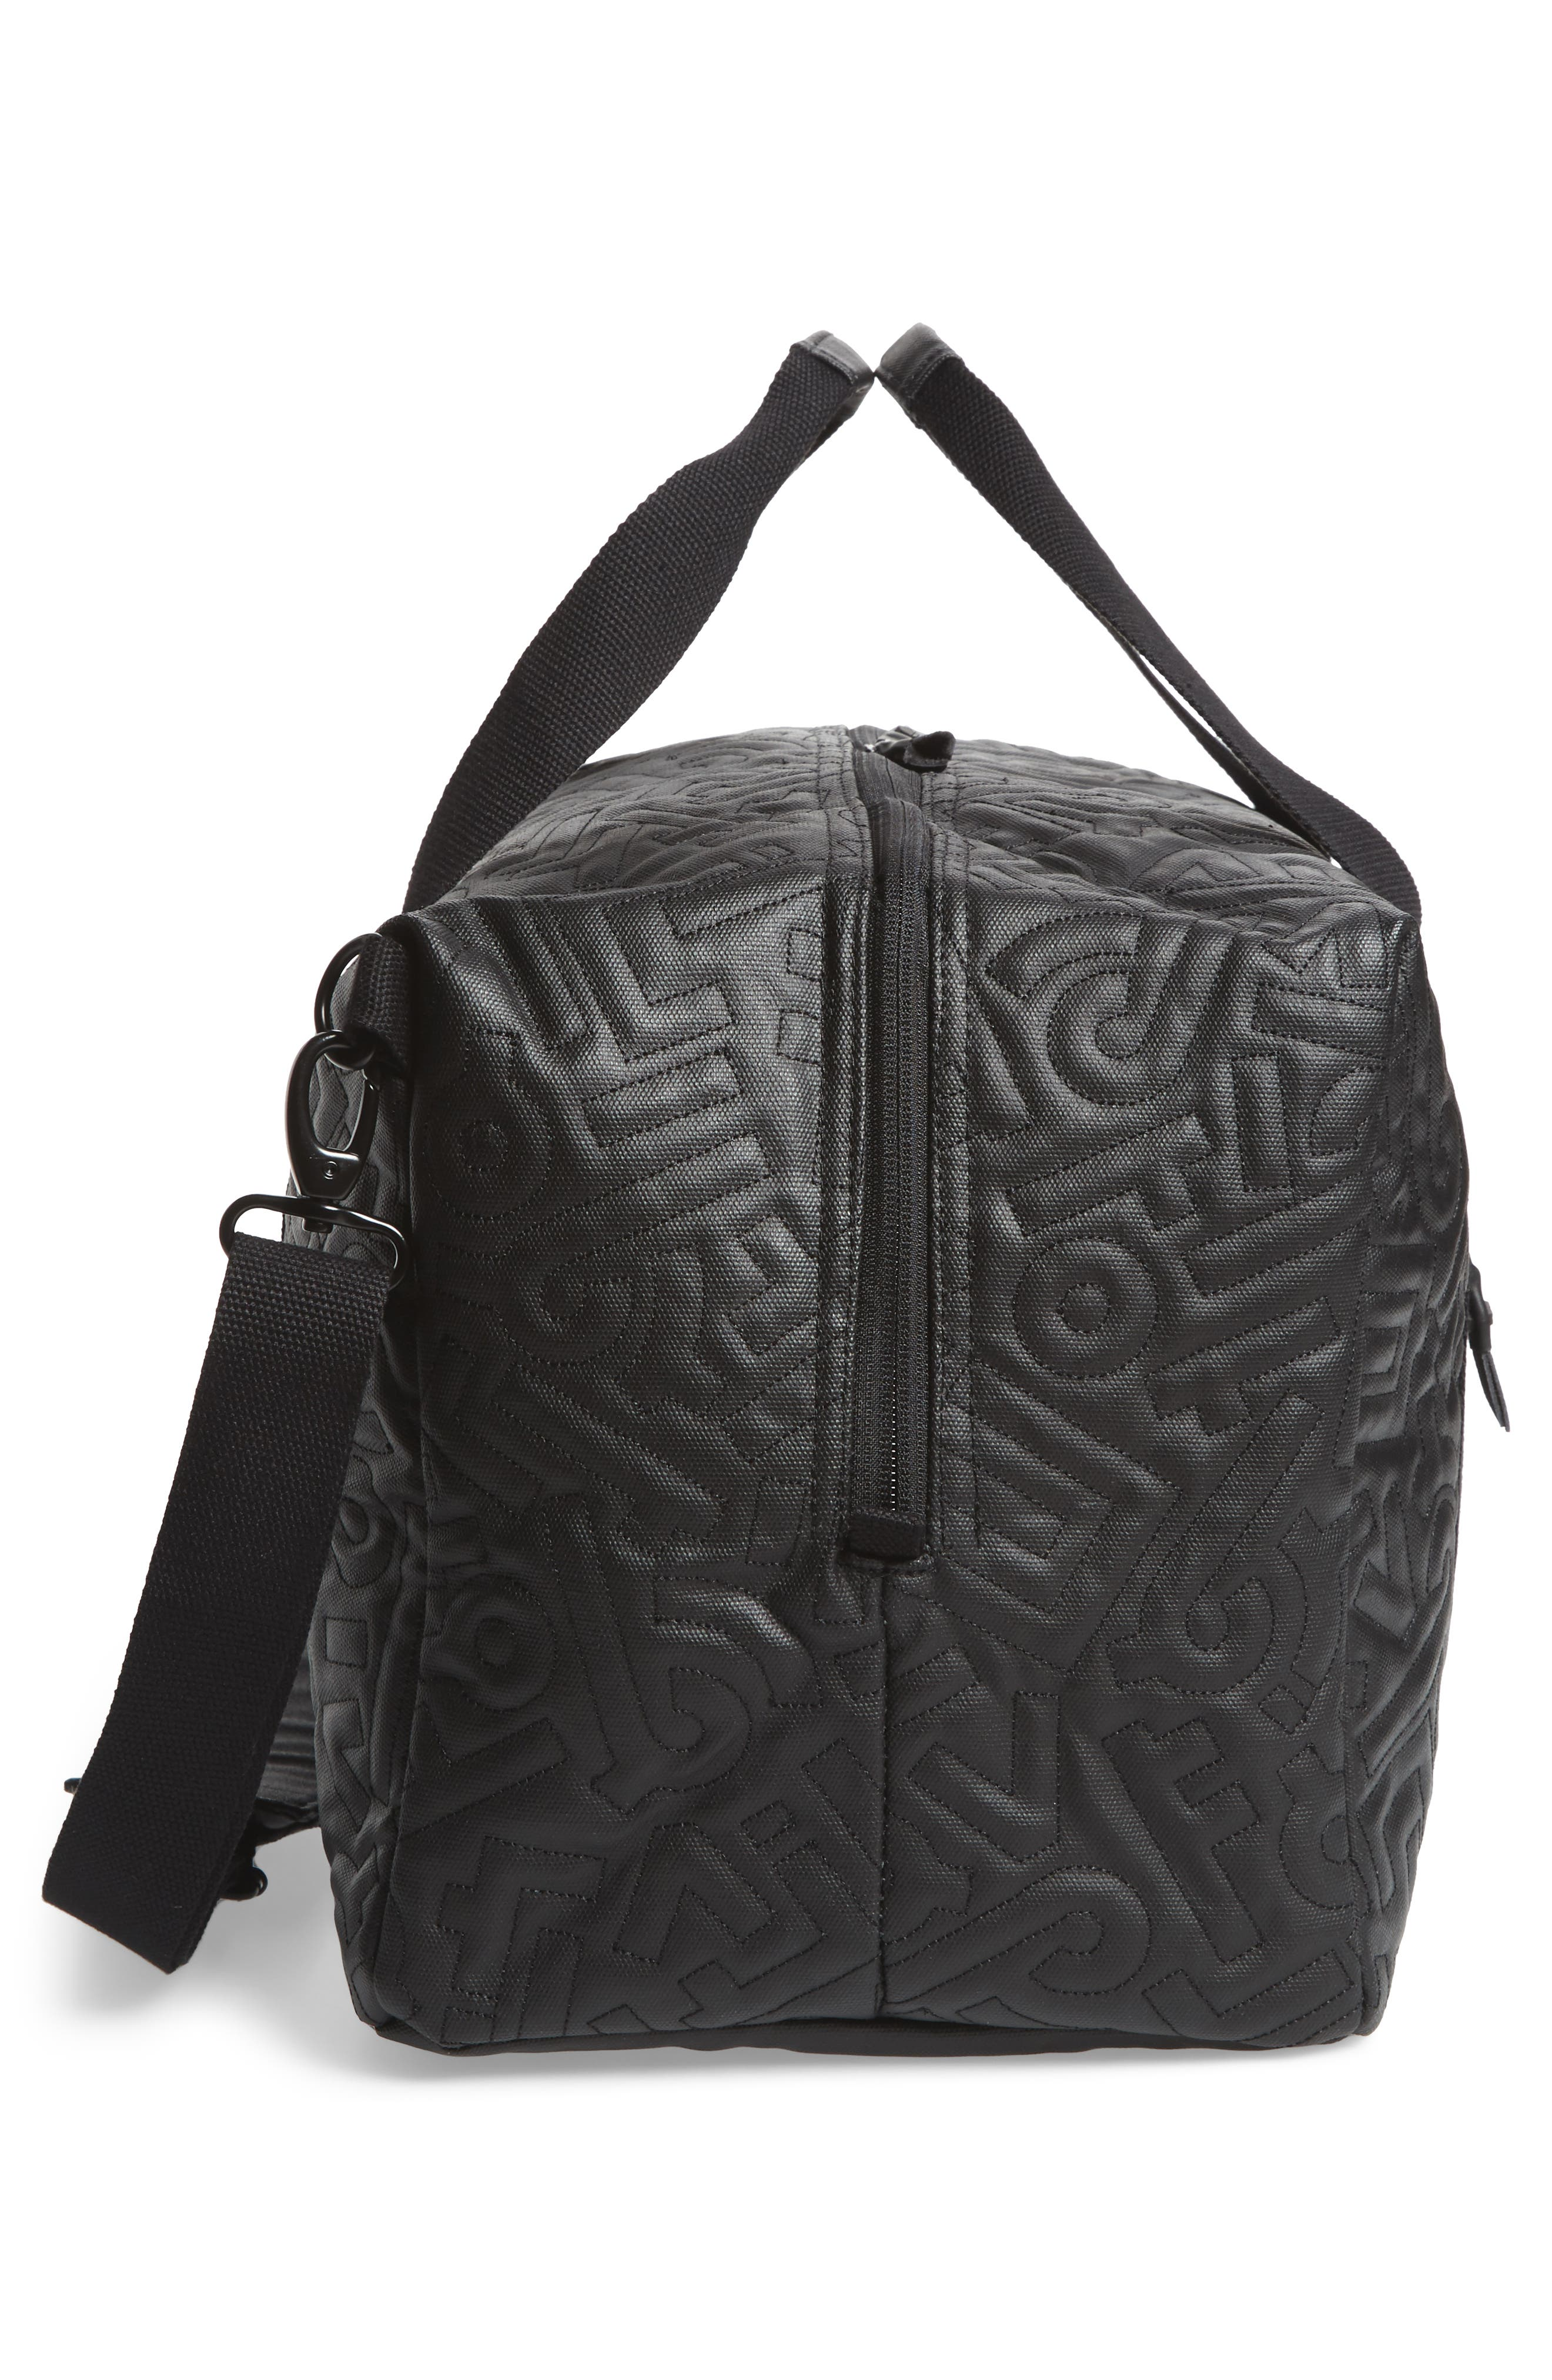 x Aaron De La Cruz Drifter Duffel Bag,                             Alternate thumbnail 5, color,                             Black Quilt